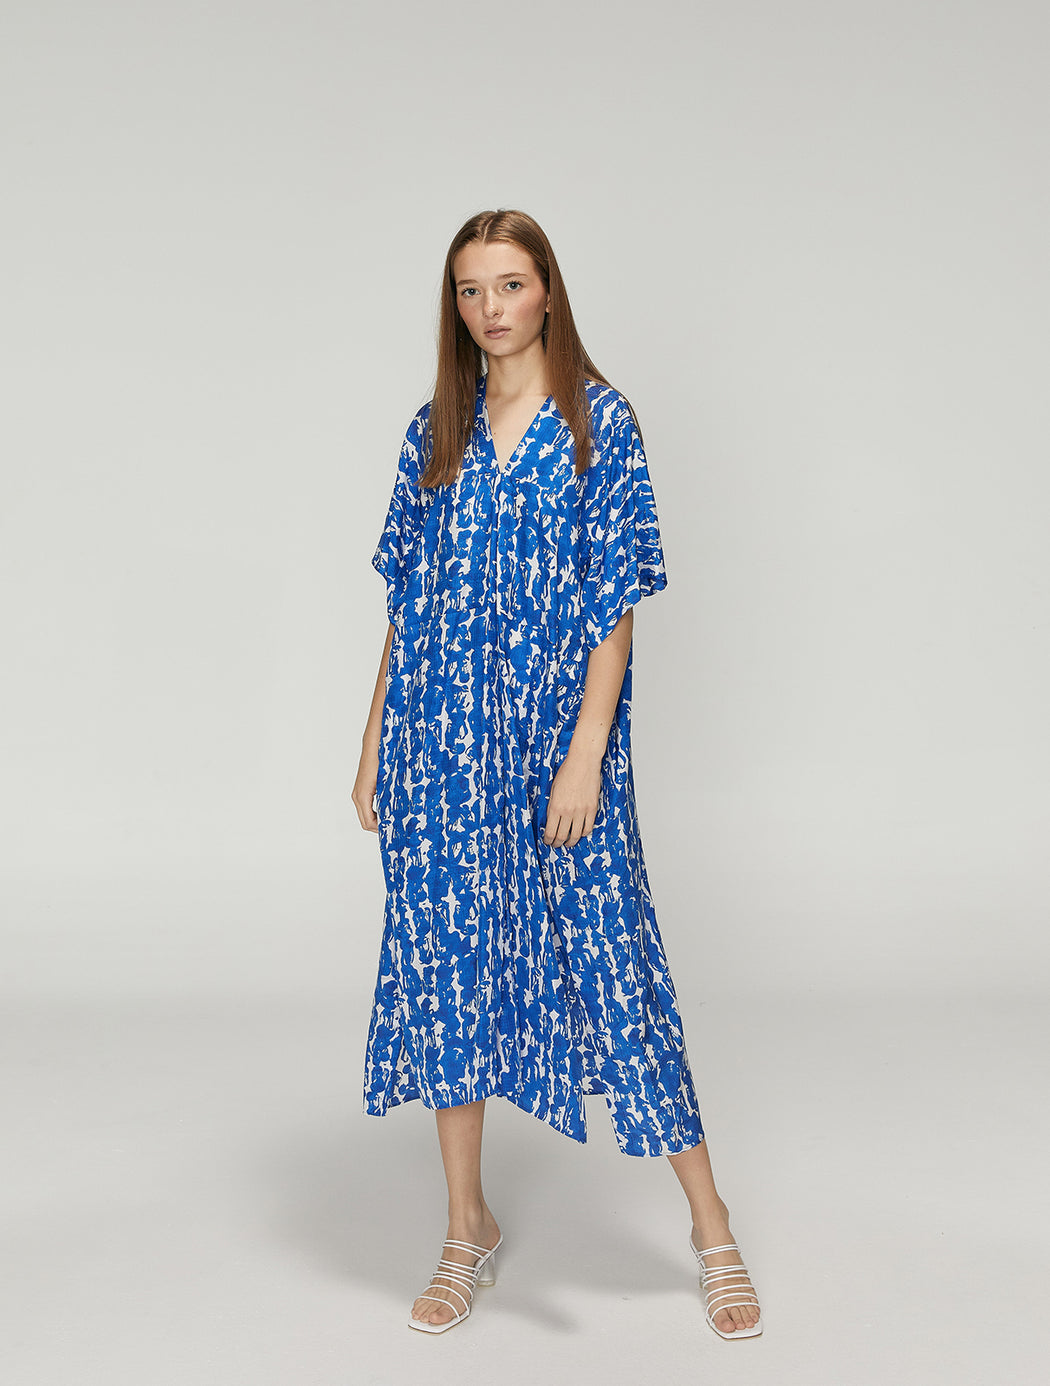 Damim Oversized Short Sleeve Dress